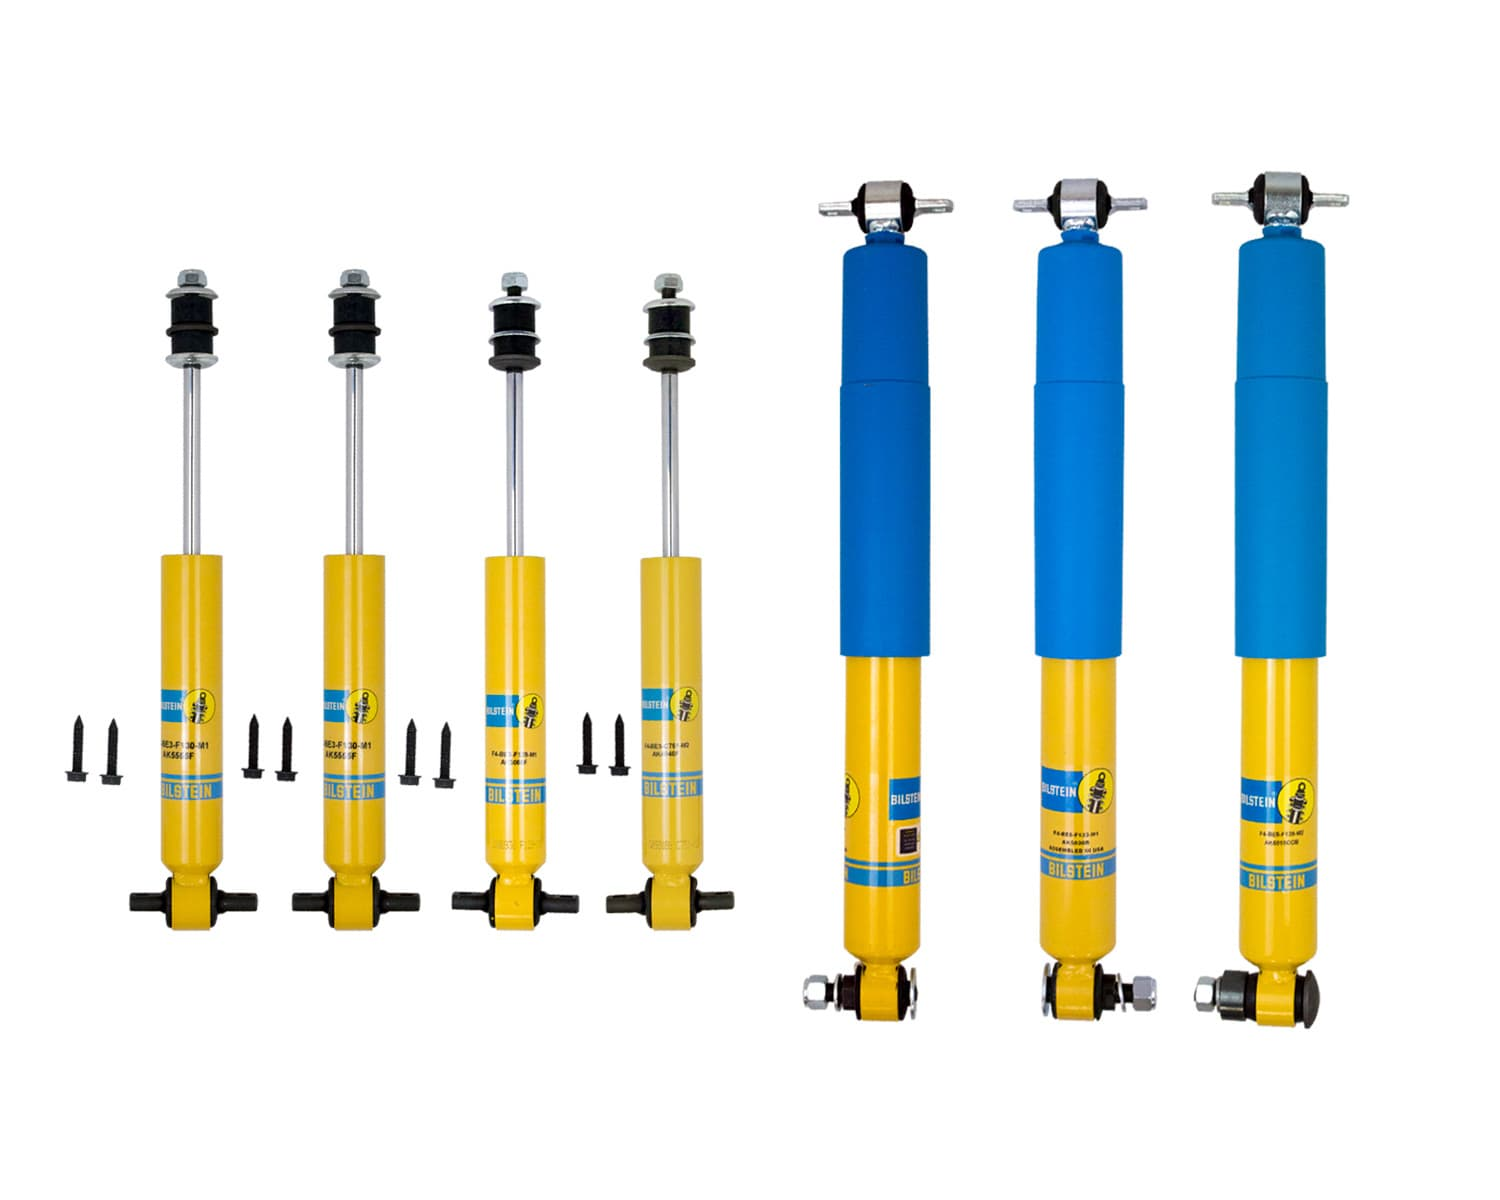 Bilstein Stock Car Shock Package, F4-SE7-F565-M0 1978-88 Metric Chassis Street Stock Shock Pack